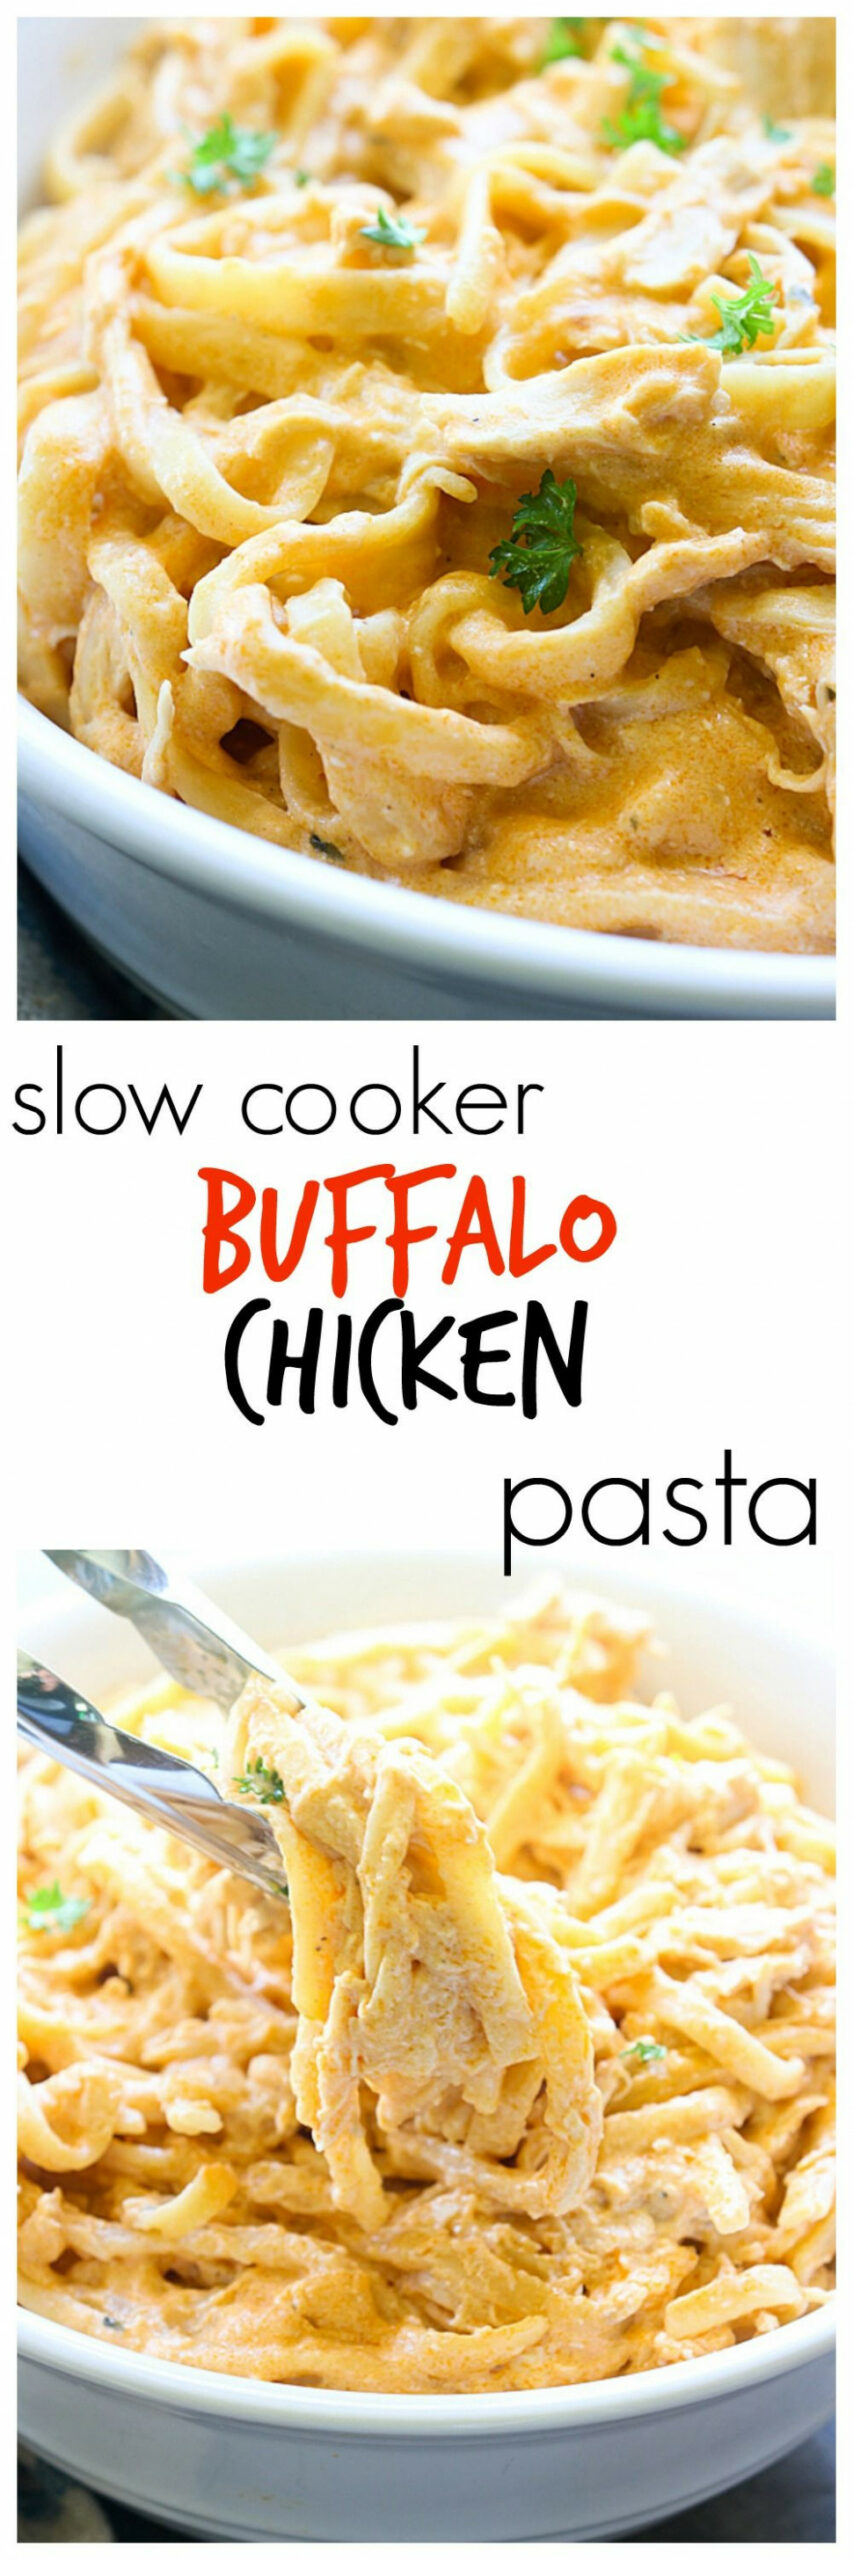 Slow Cooker Buffalo Chicken Pasta | Recipe | Chicken ..